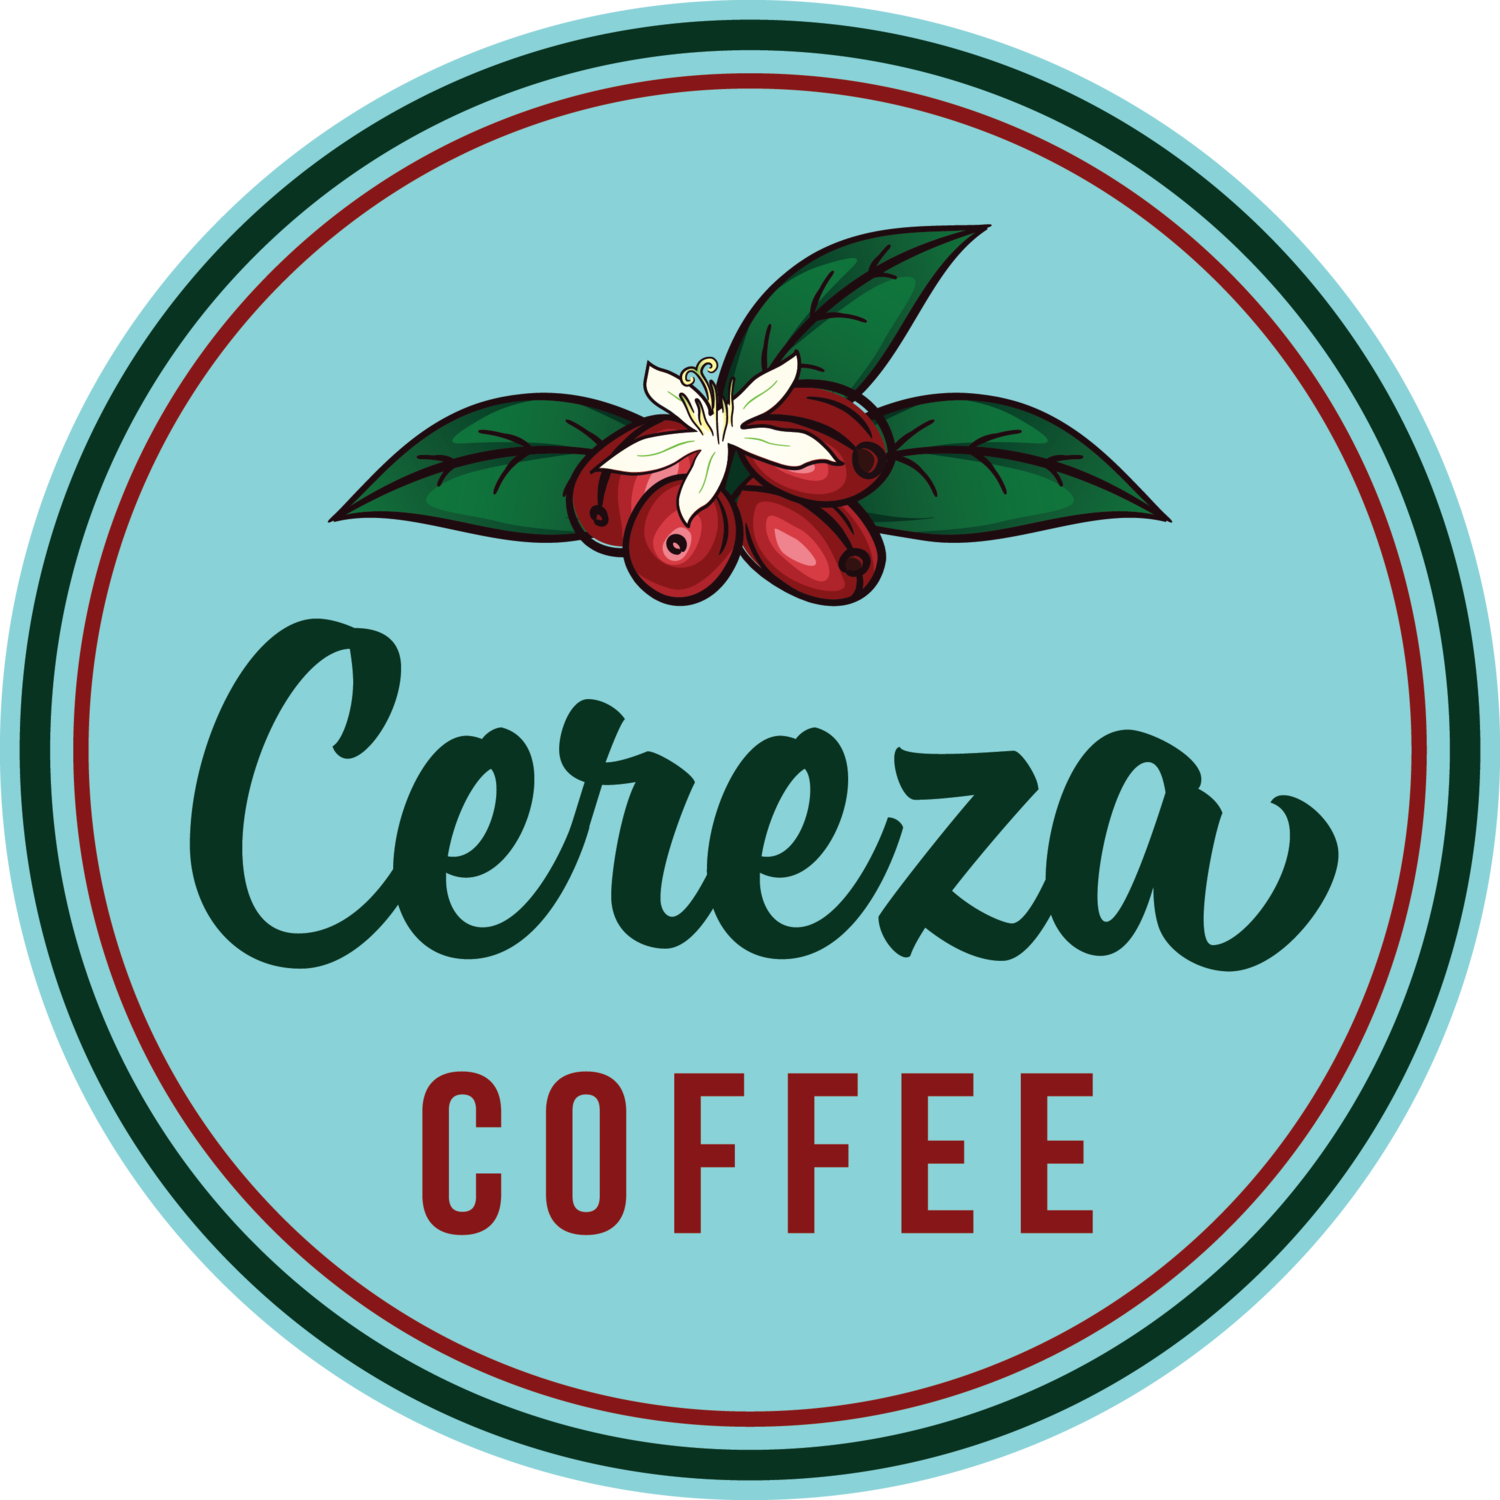 Cereza Coffee